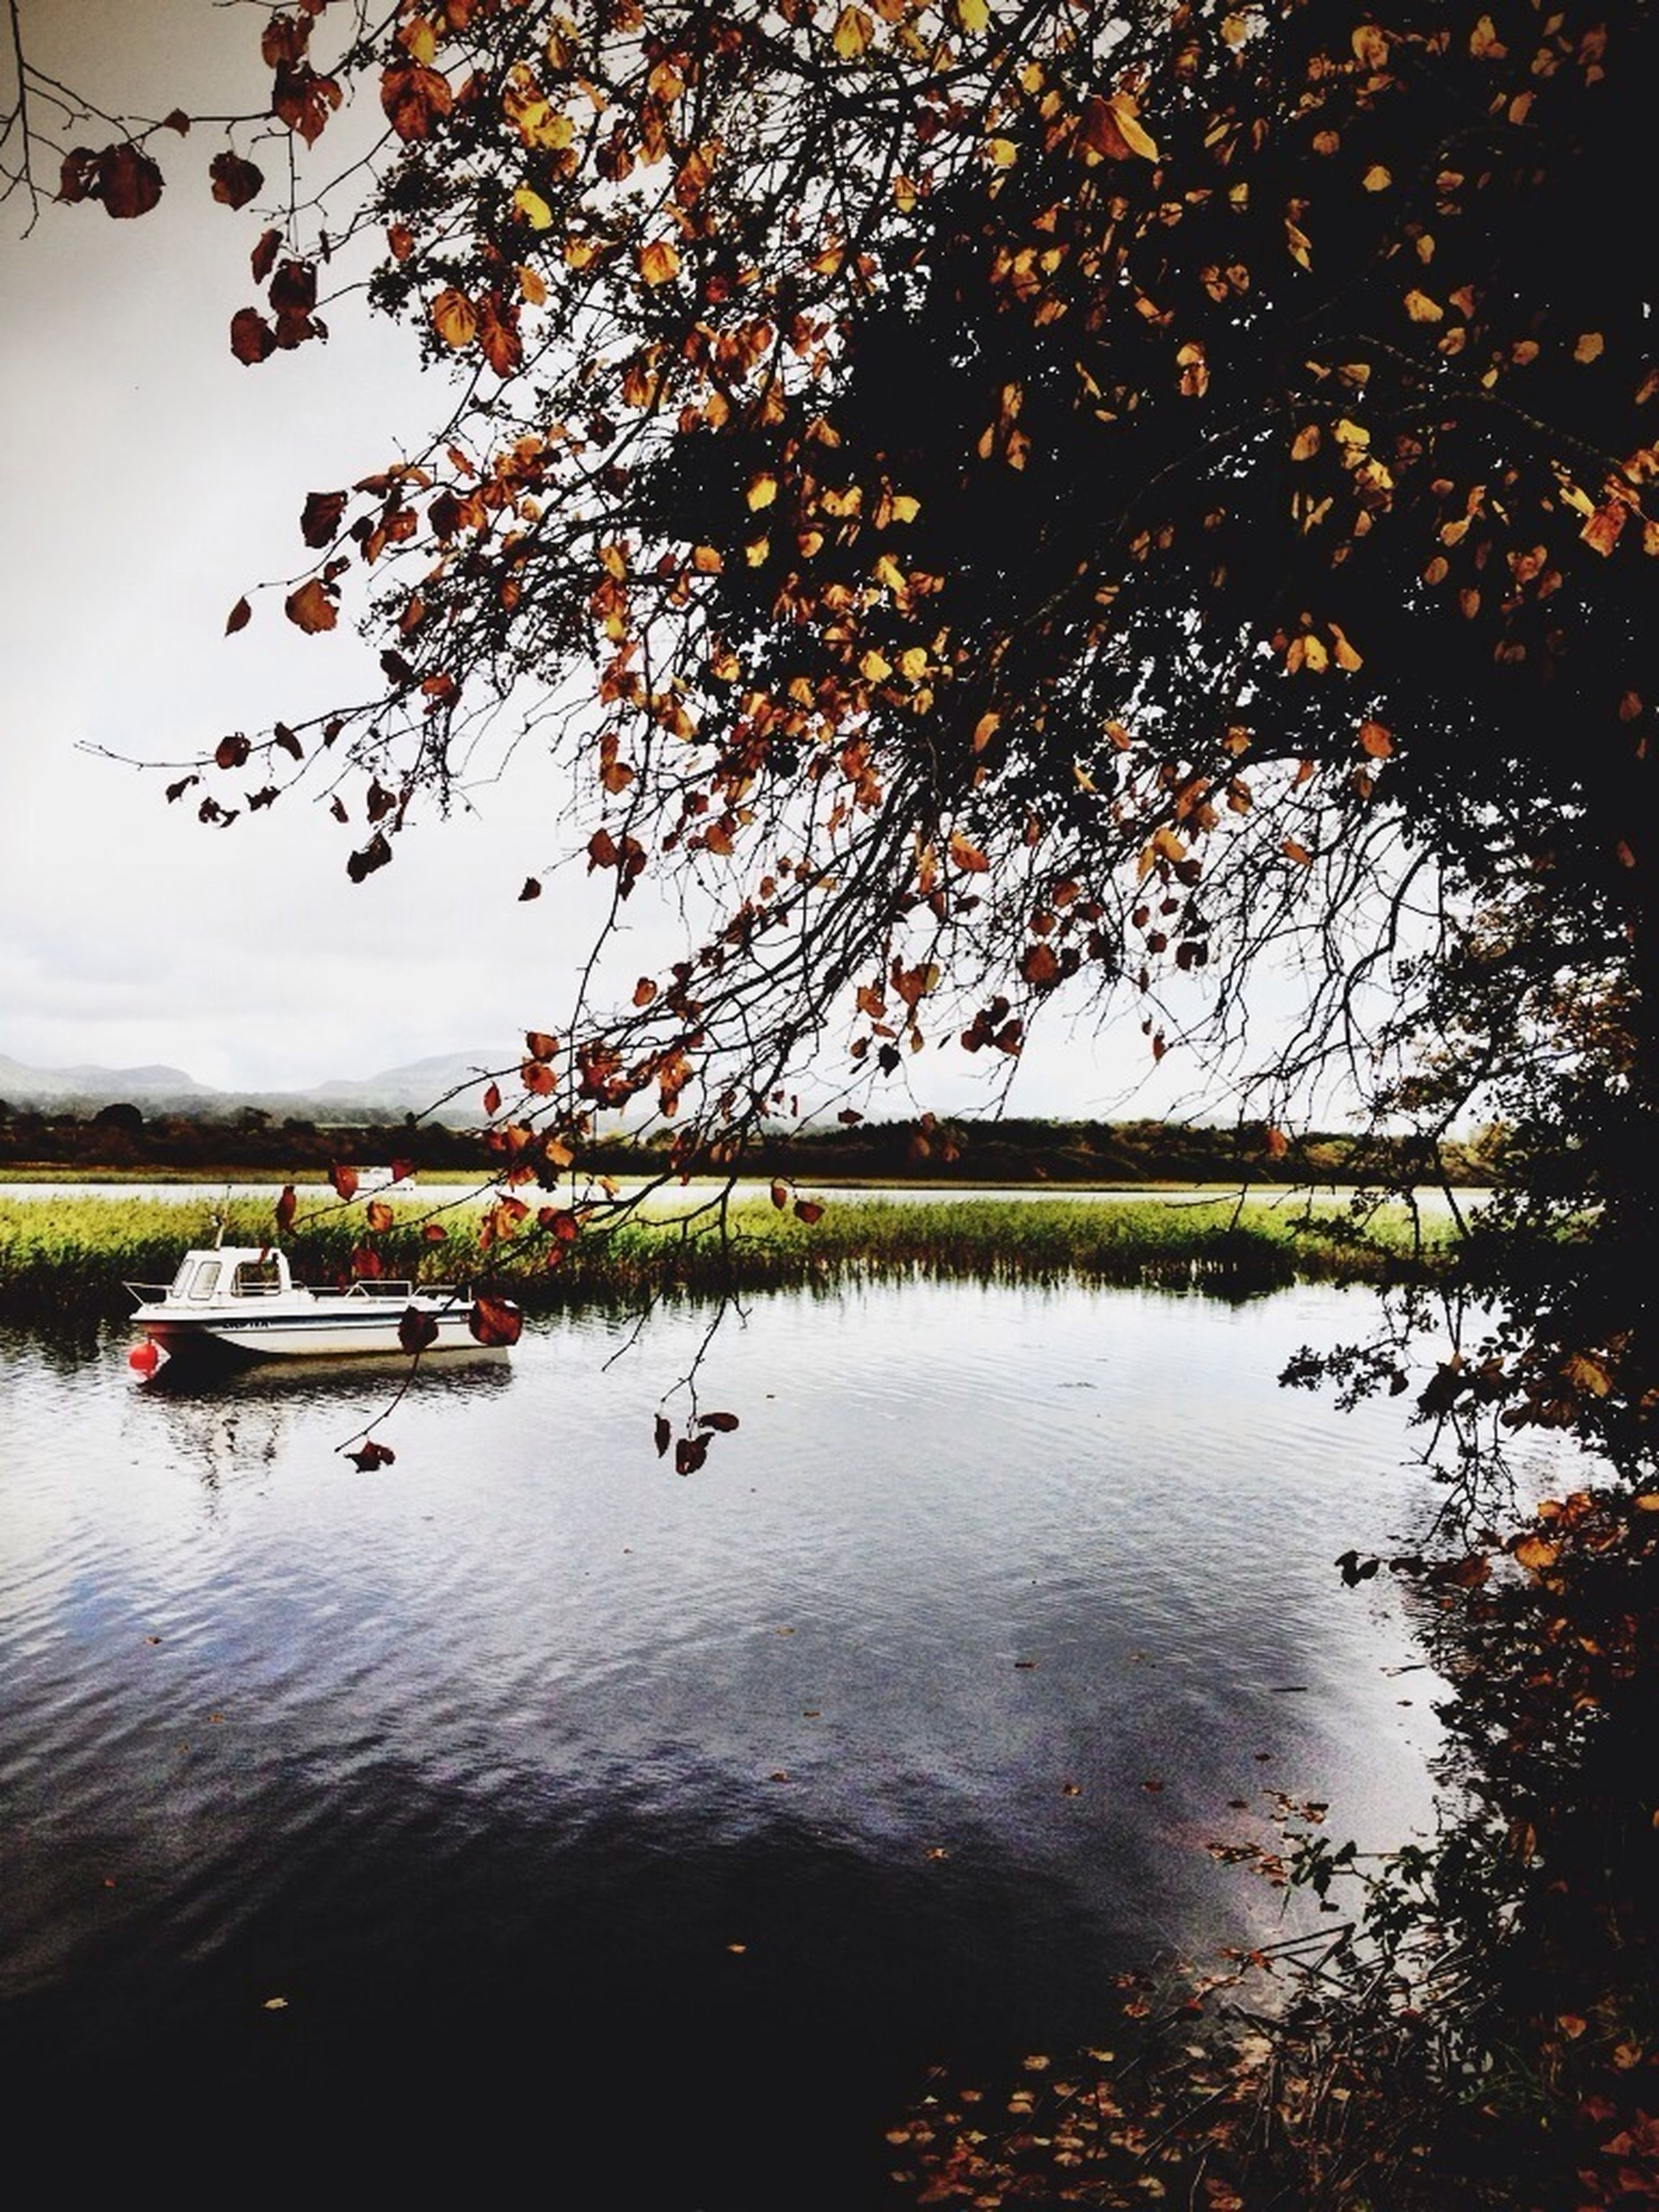 water, nautical vessel, tree, boat, transportation, mode of transport, reflection, lake, tranquility, tranquil scene, waterfront, nature, scenics, beauty in nature, sky, moored, branch, river, growth, idyllic